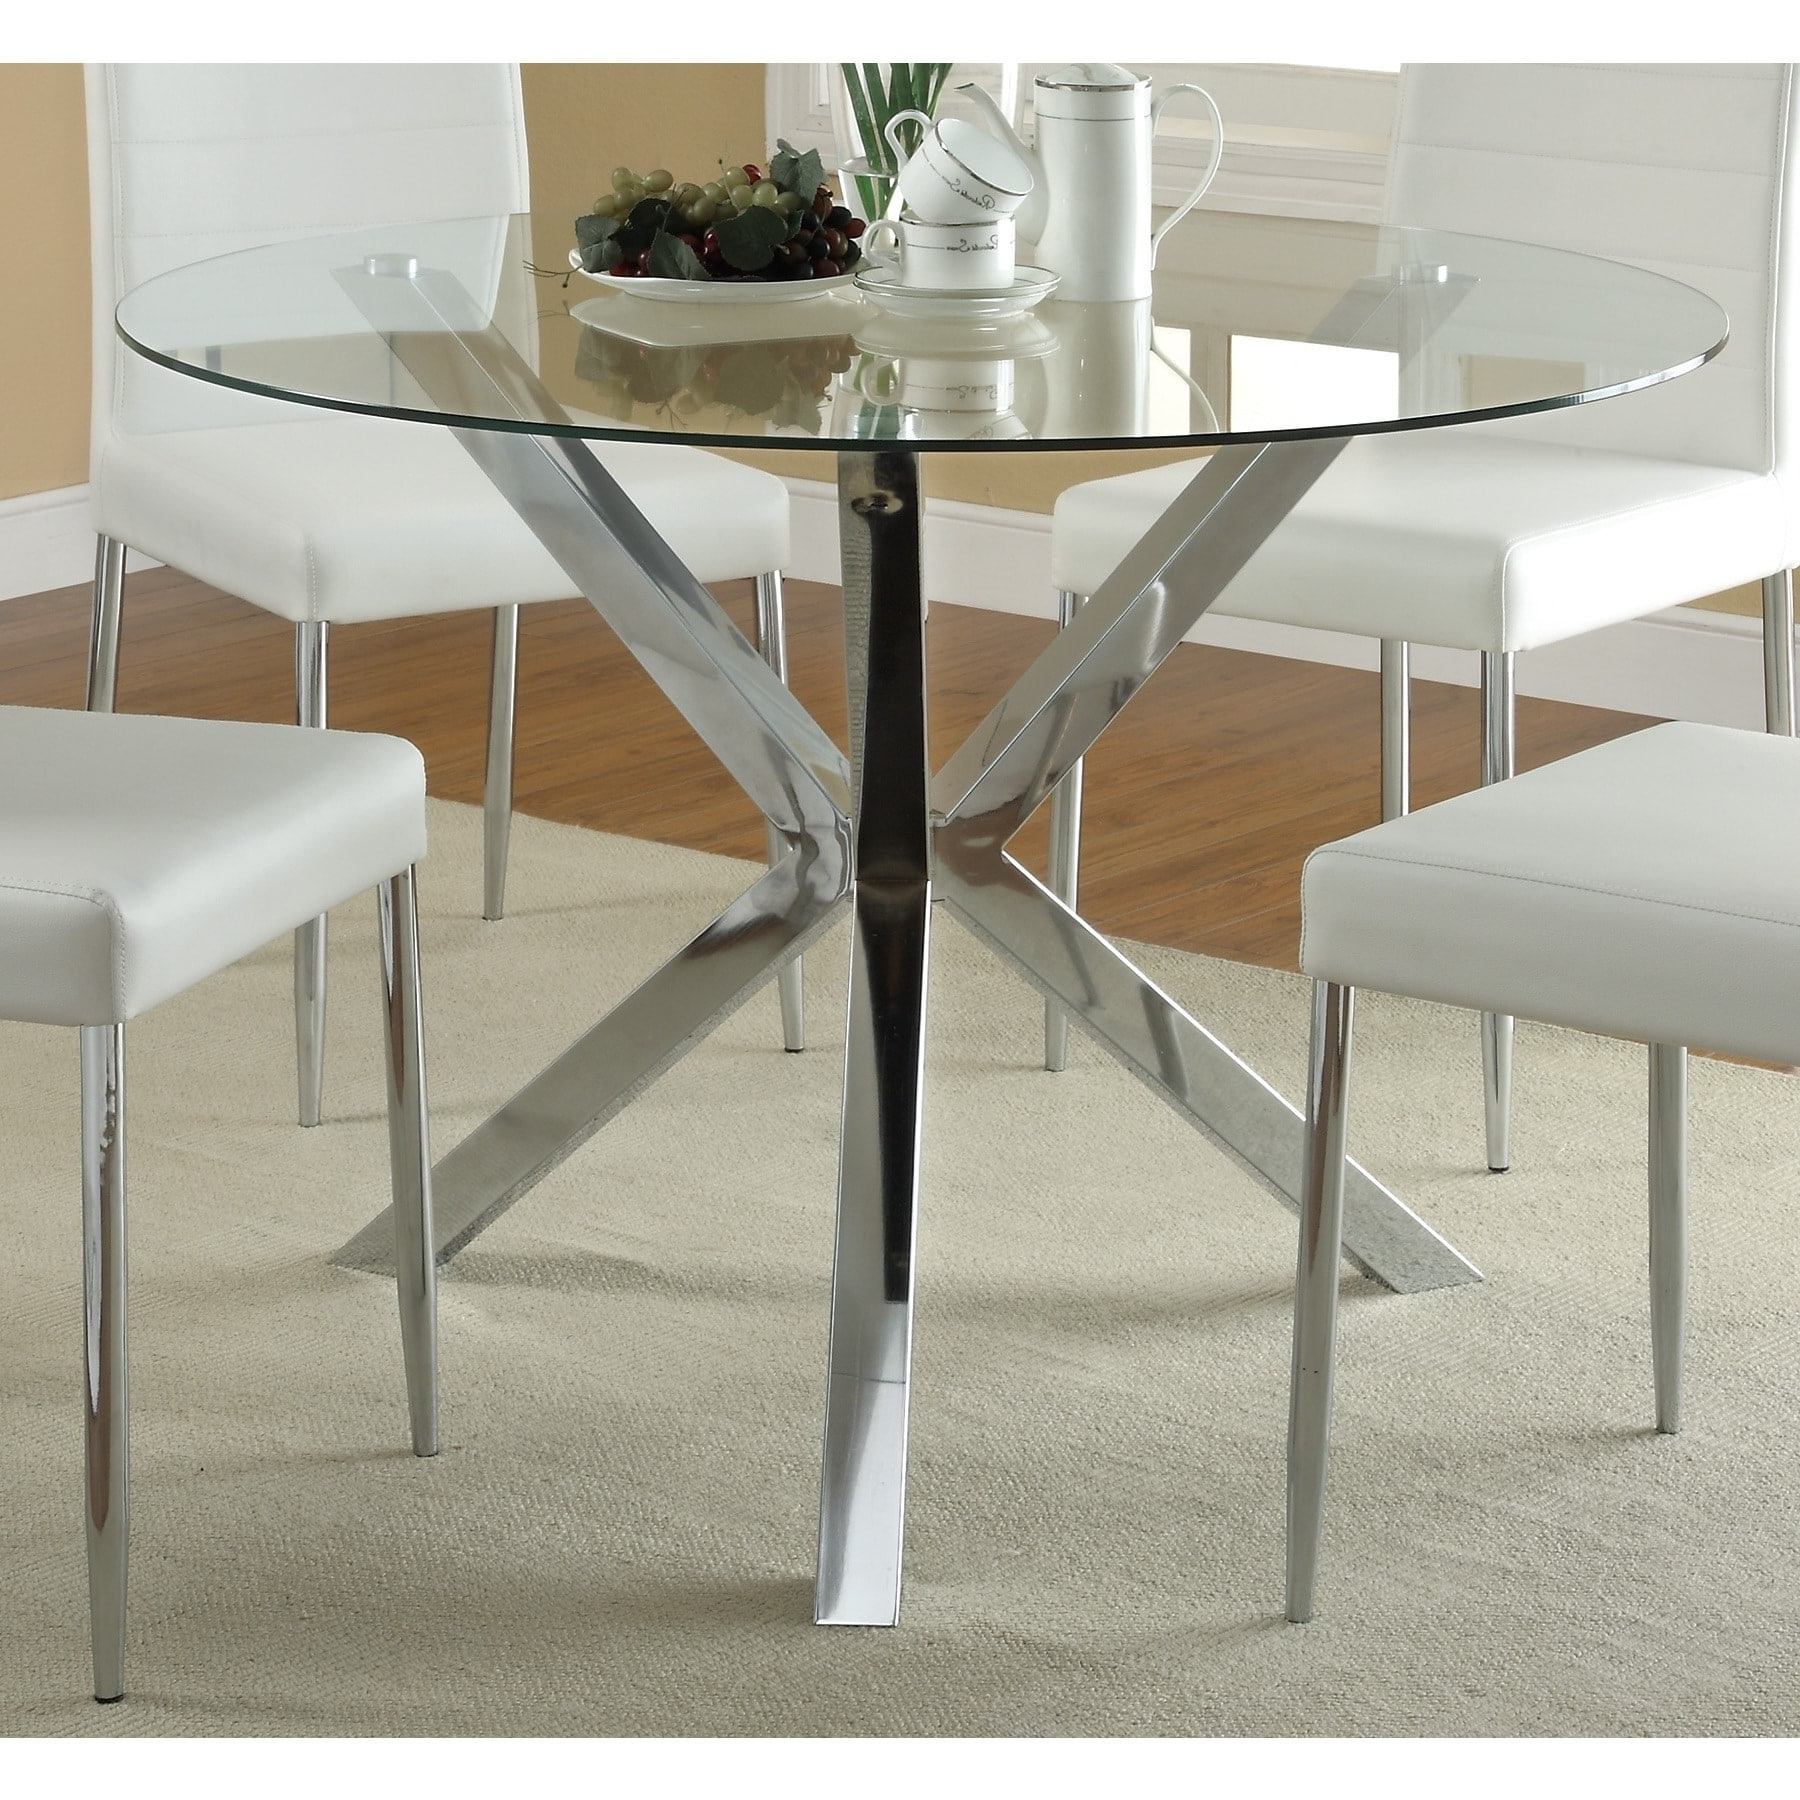 Round Glass Top Dining Tables In Well Known Coaster Vance Contemporary Glass Top Round Dining Table In (View 5 of 30)